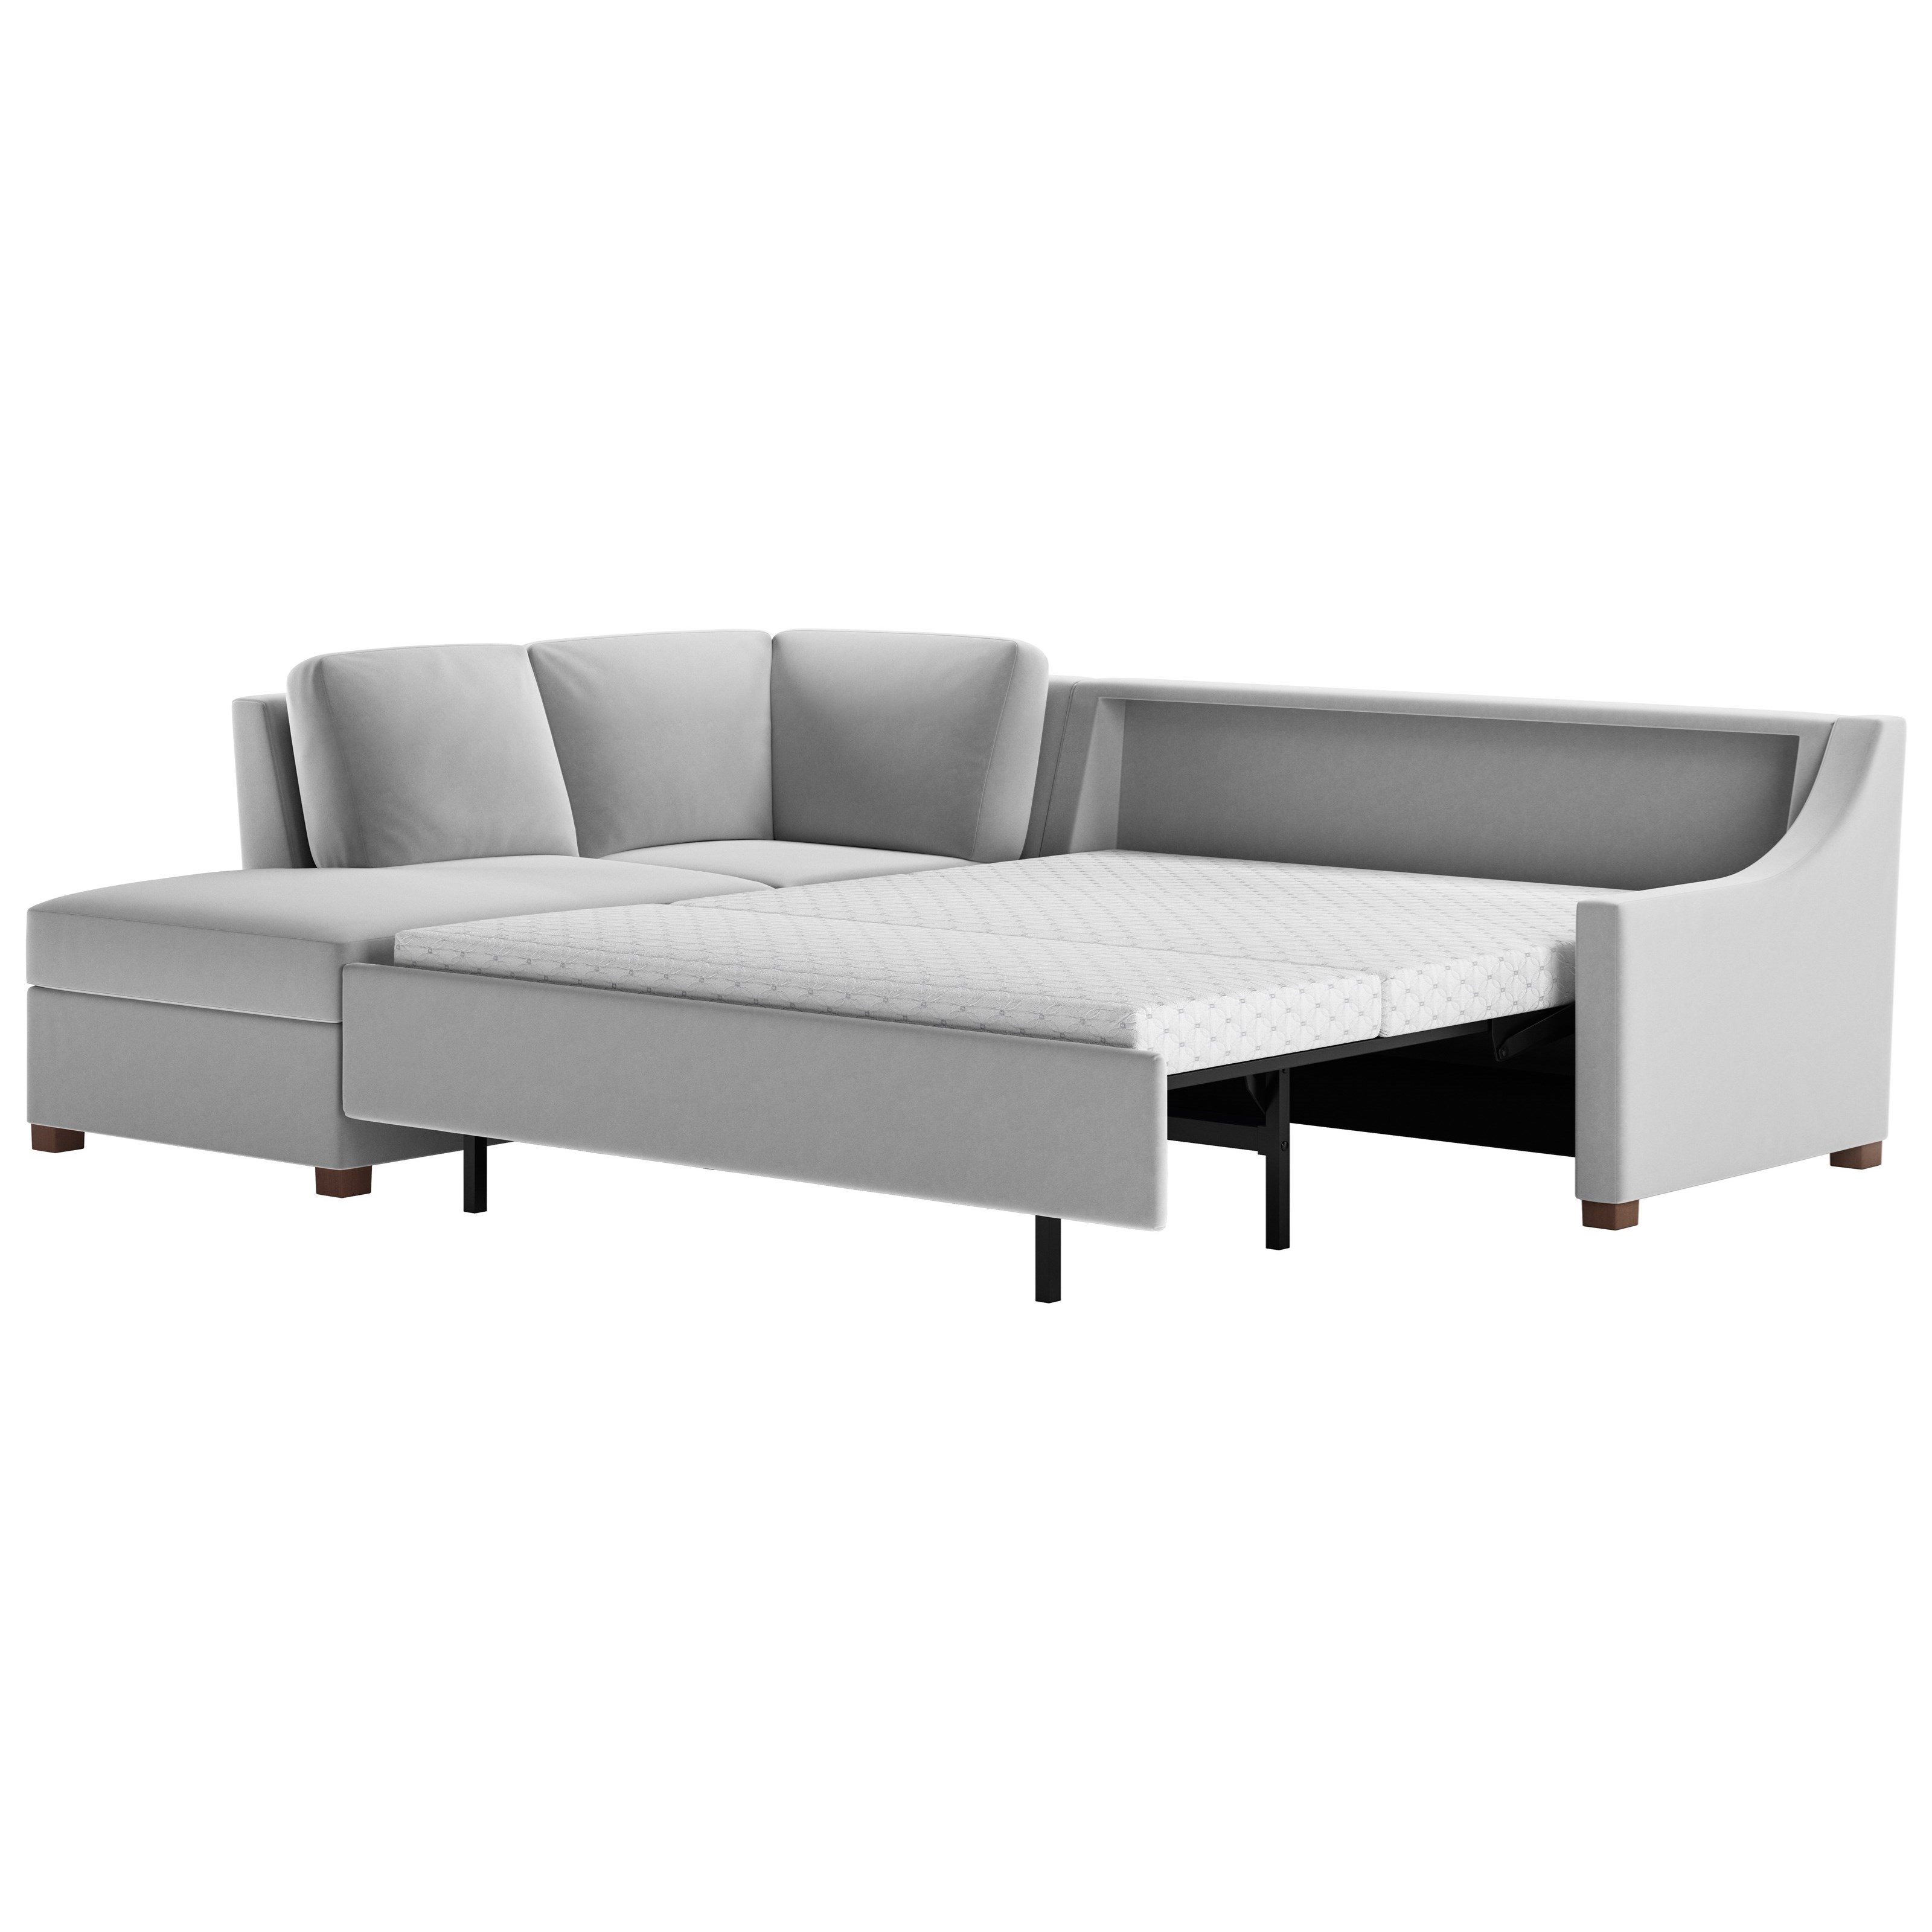 Perry 2 Pc Sectional Sofa w/ Queen Sleeper by American Leather at Saugerties Furniture Mart